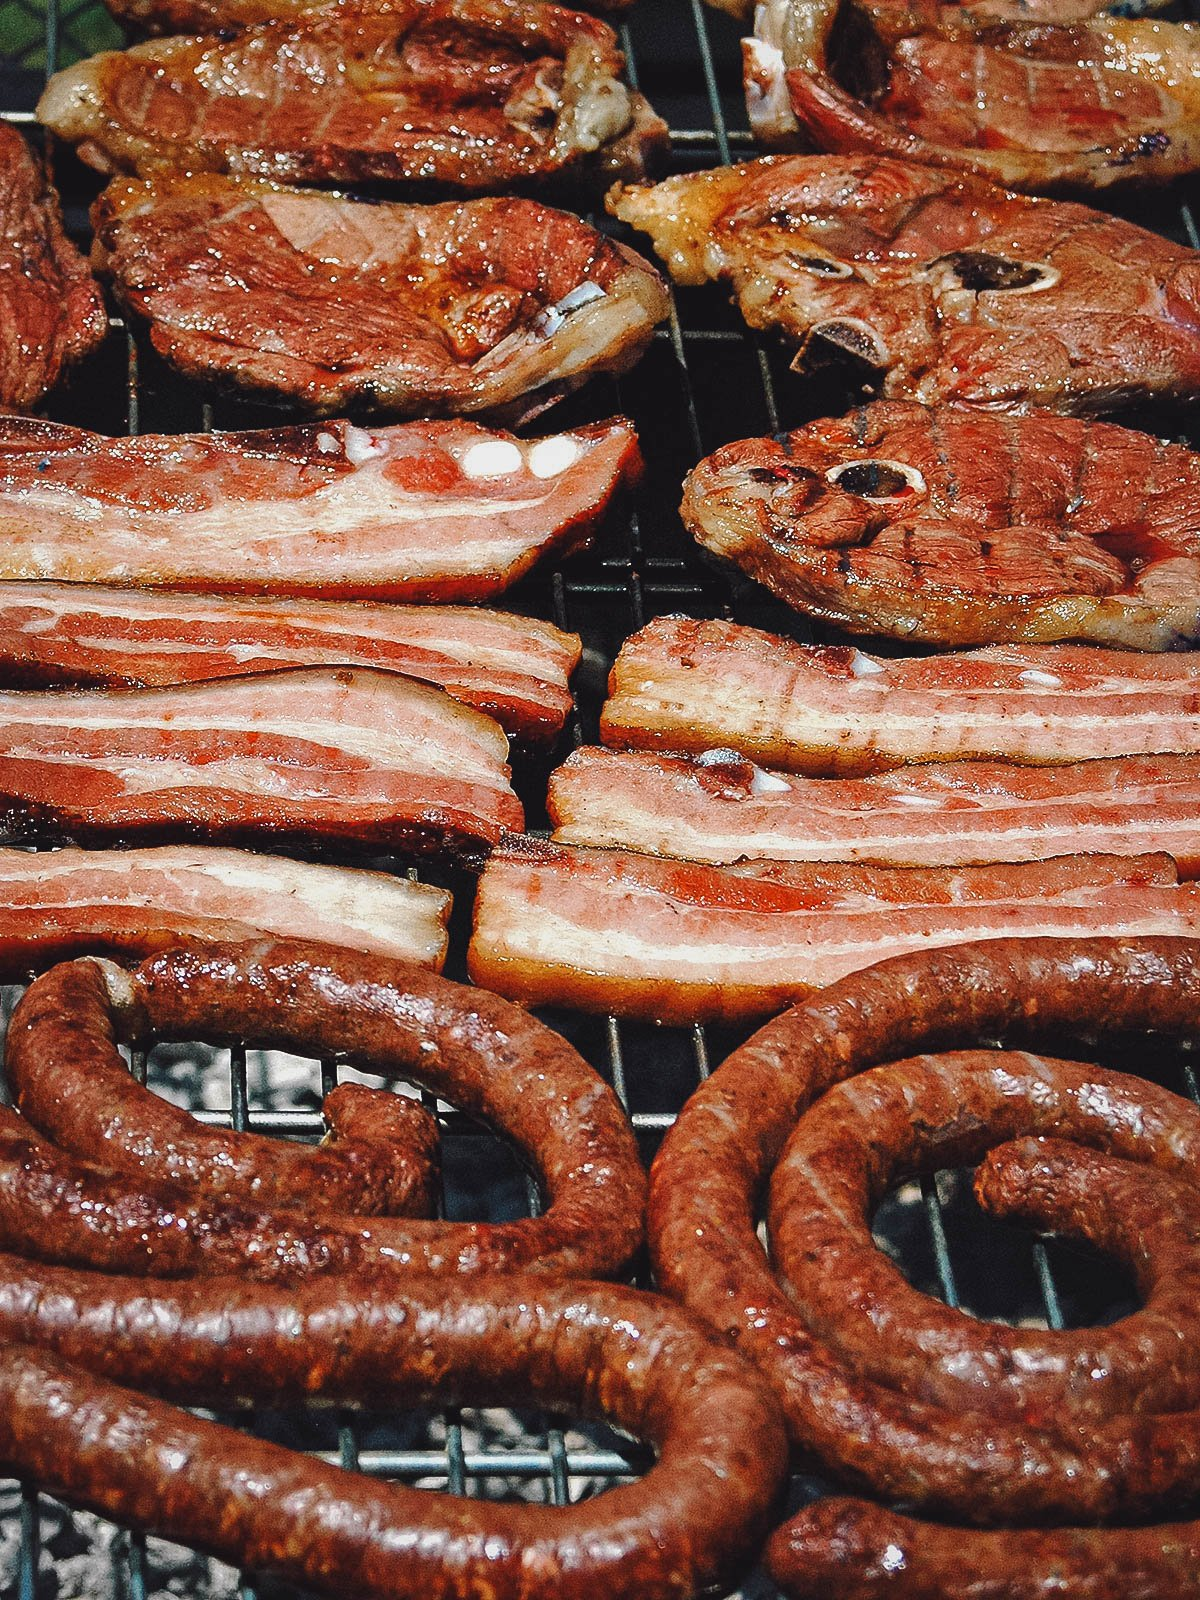 Different meats grilling at a braai or South African barbecue